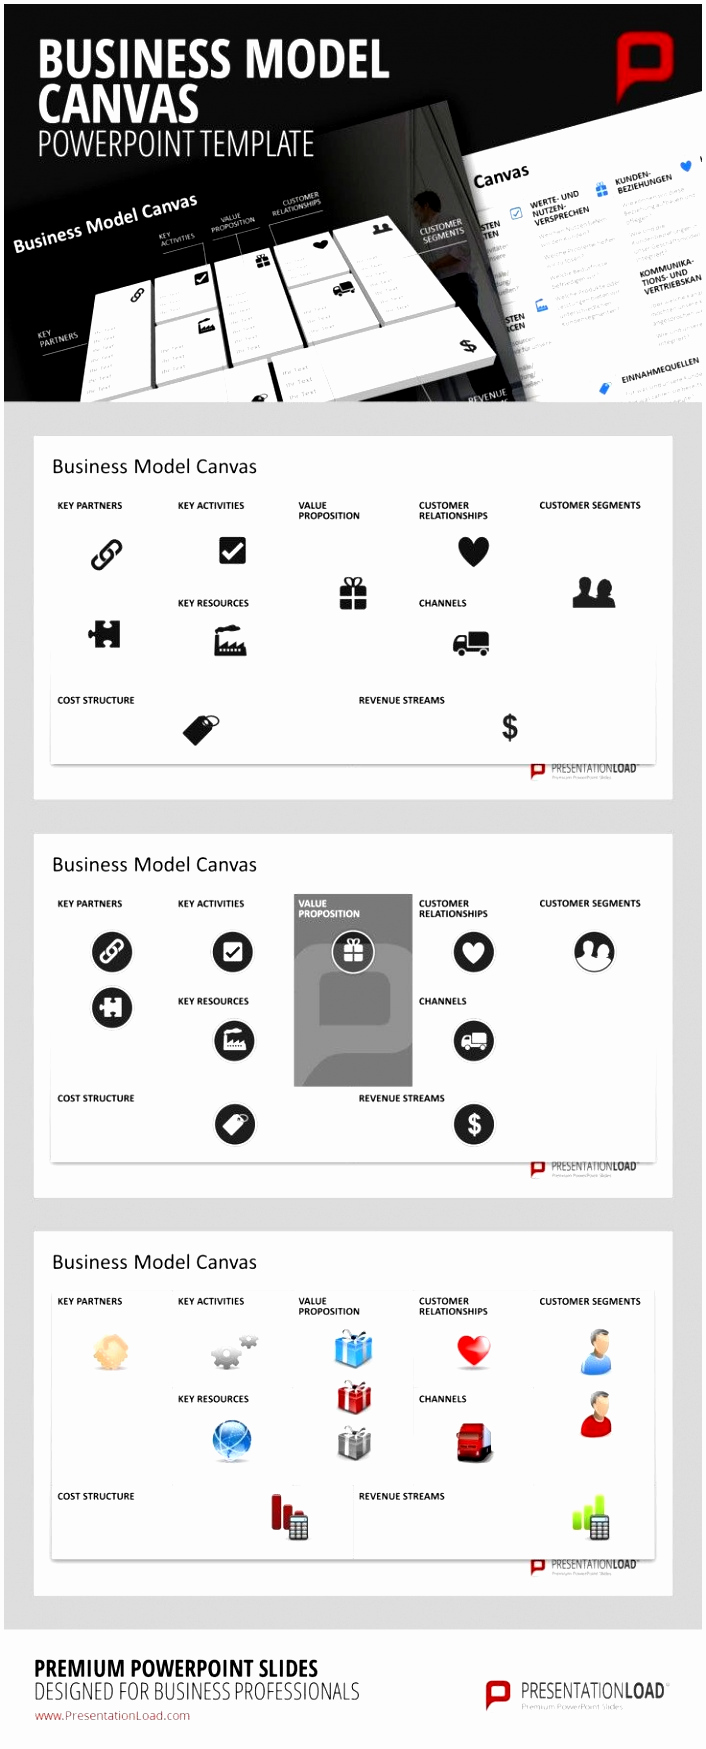 Business Model Canvas Template Word Inspirational 7 Business Model Generation Canvas Template Rtbty